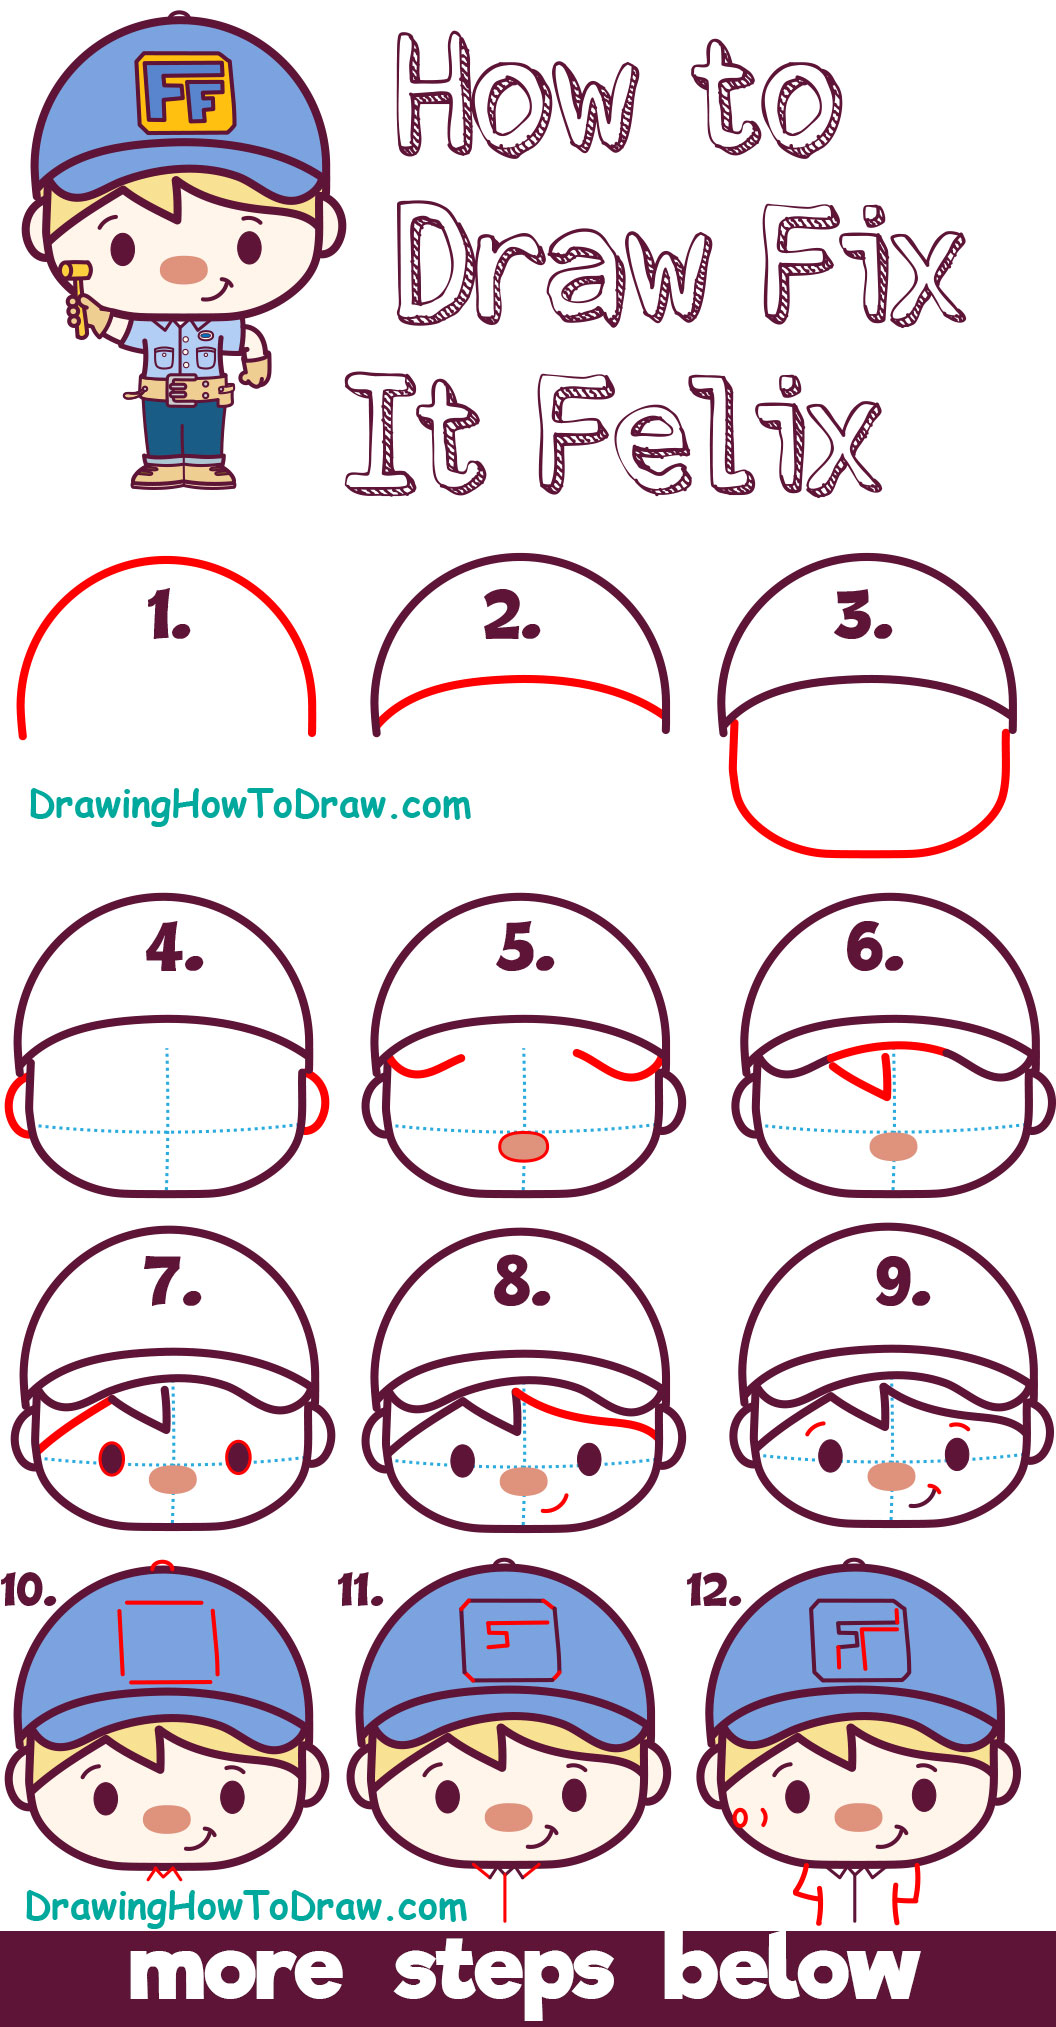 Learn How to Draw Cute Kawaii Chibi Fix-it Felix from Wreck it Ralph 2 - Easy Steps for Kids